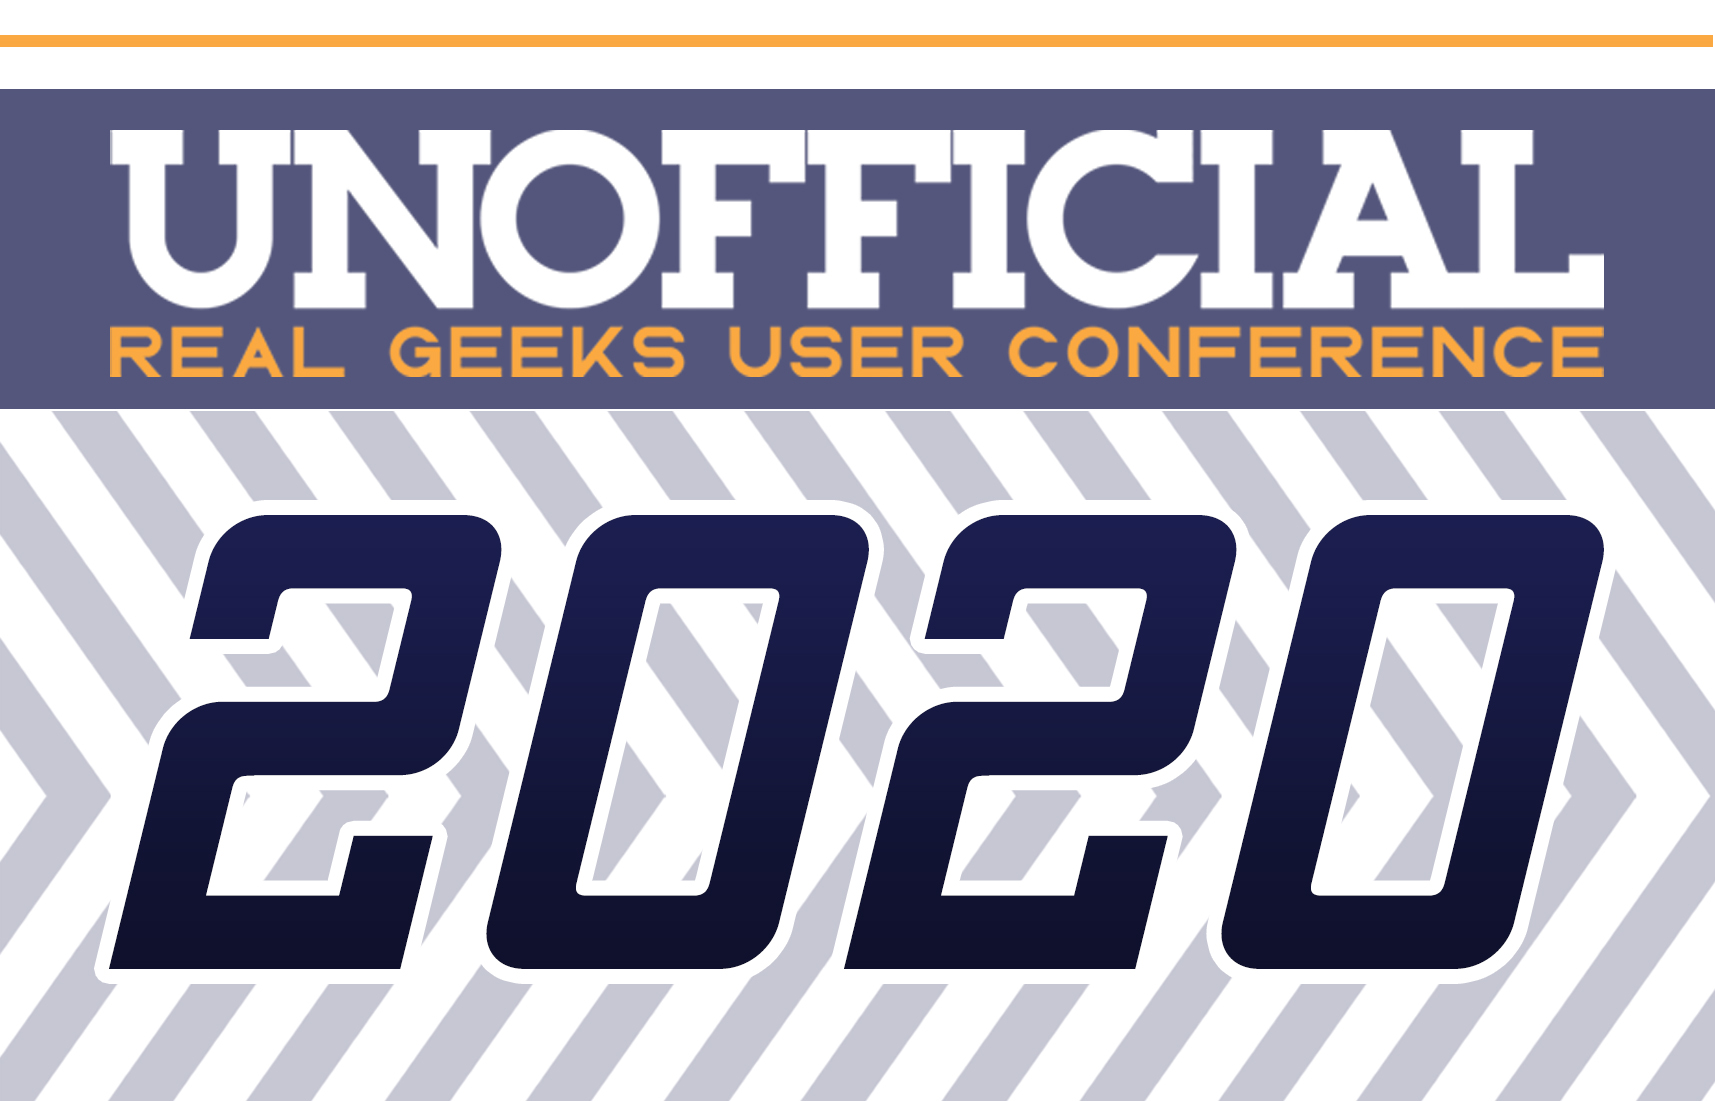 unofficial Real Geeks user conference 2020 - Hosted by Todd Tramonte's Real Estate Growth Systems